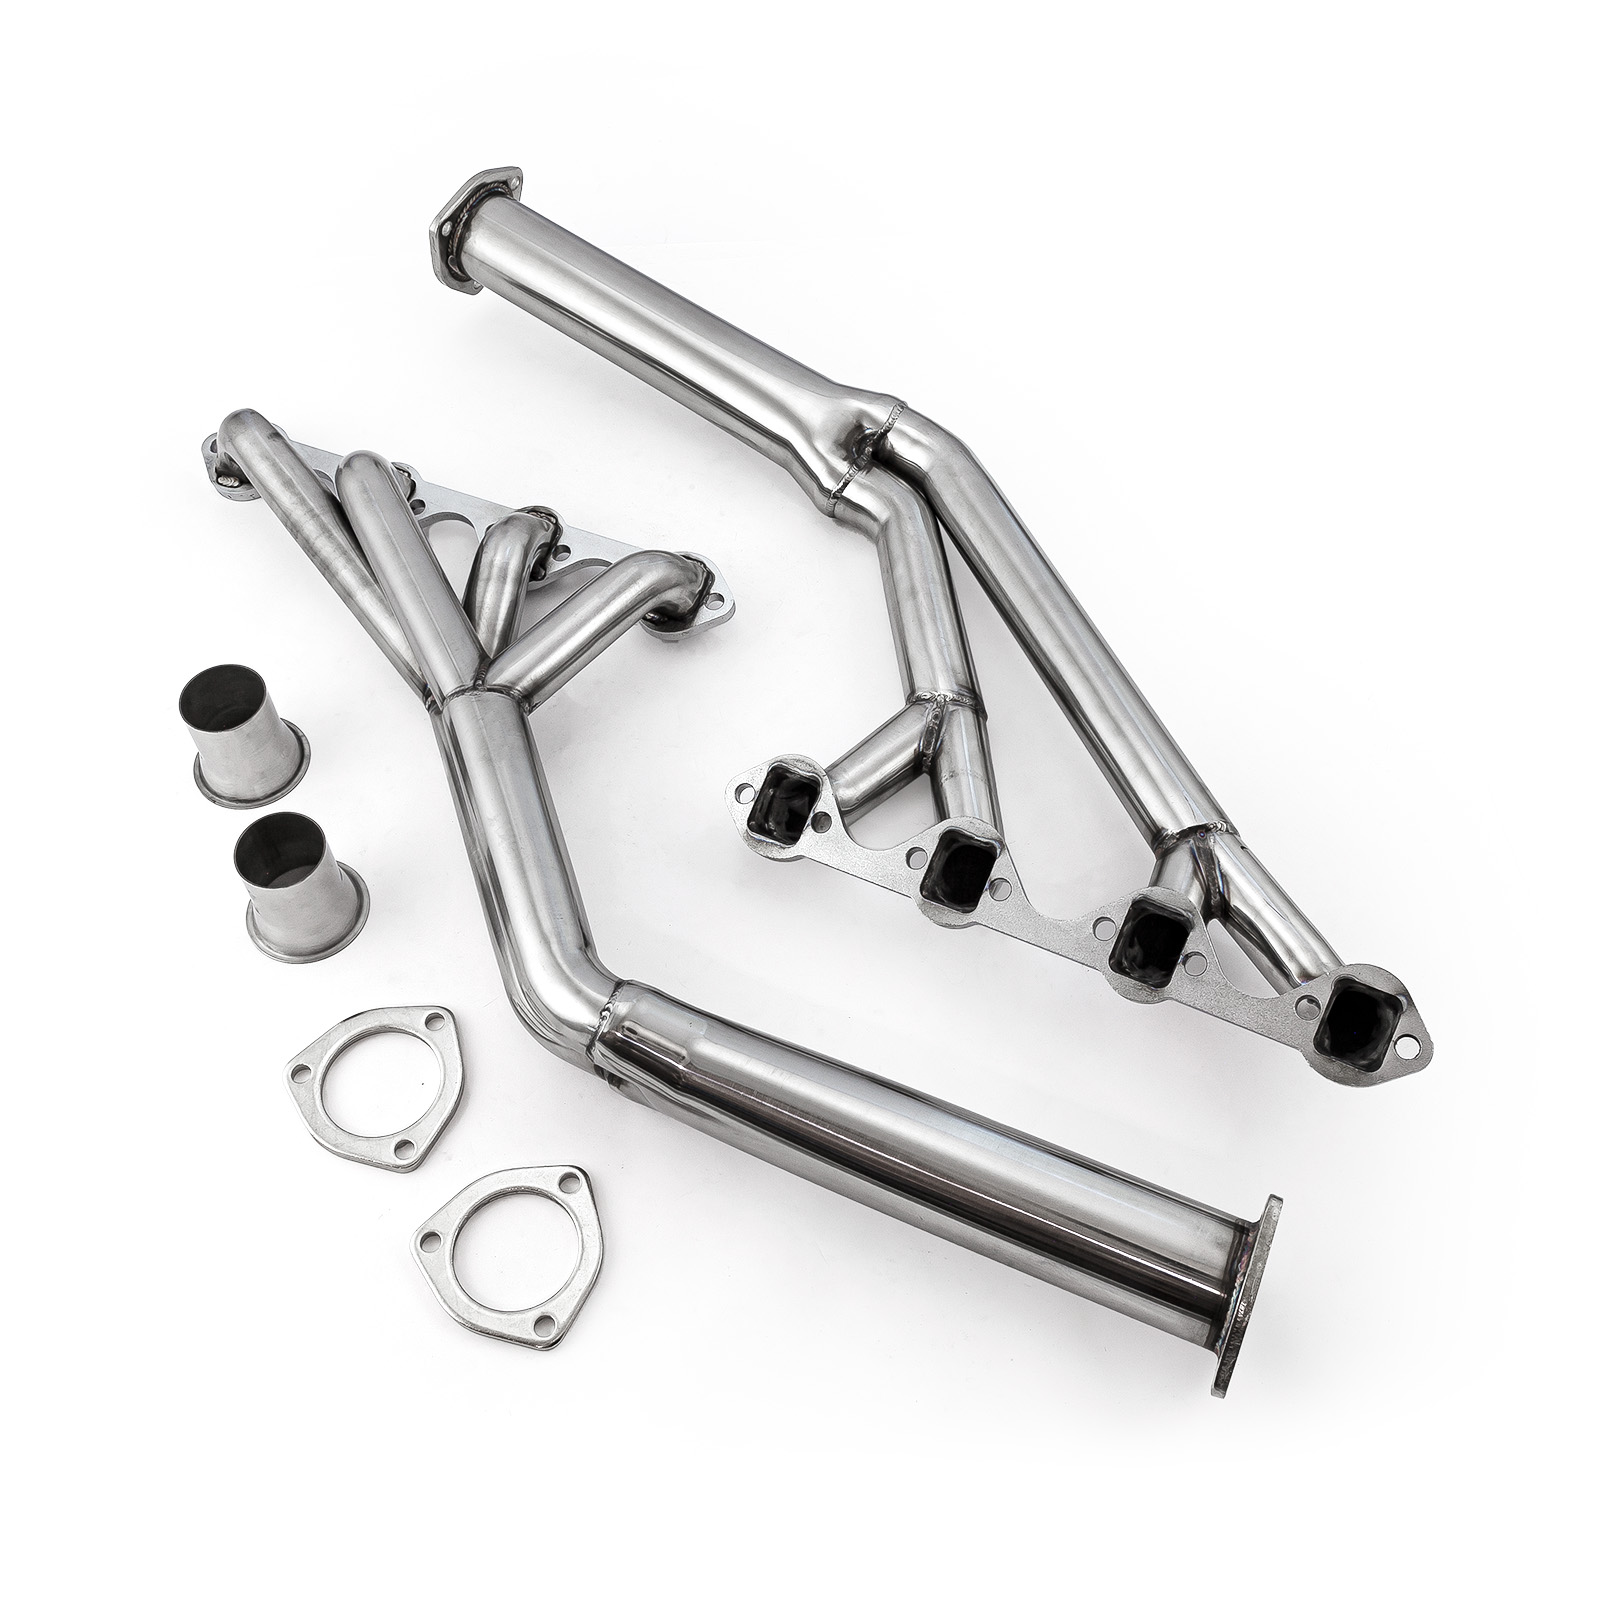 Ford SB 289 302 351W Mustang 1964-70 Tri-Y Stainless Steel Exhaust Headers